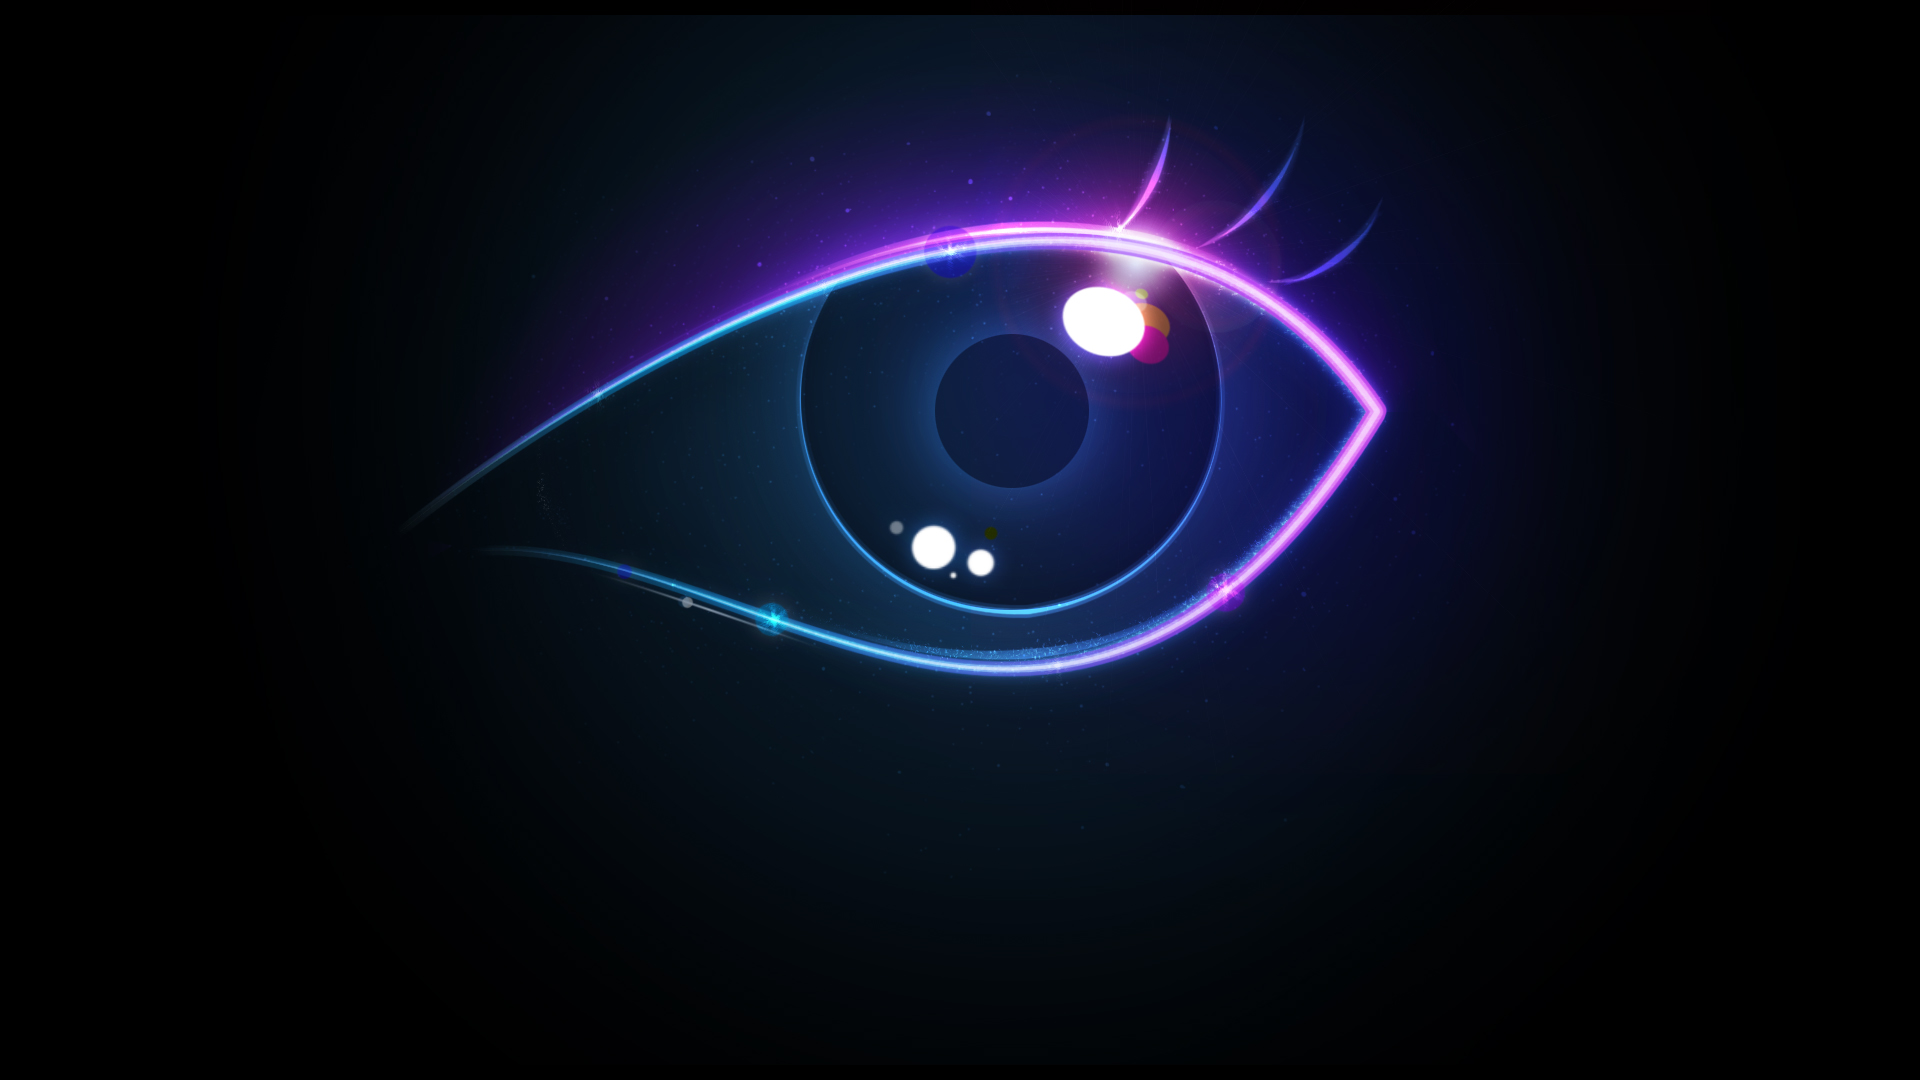 eye wallpaper colorful creative backgrounds desktop wallpapers 1920x1080